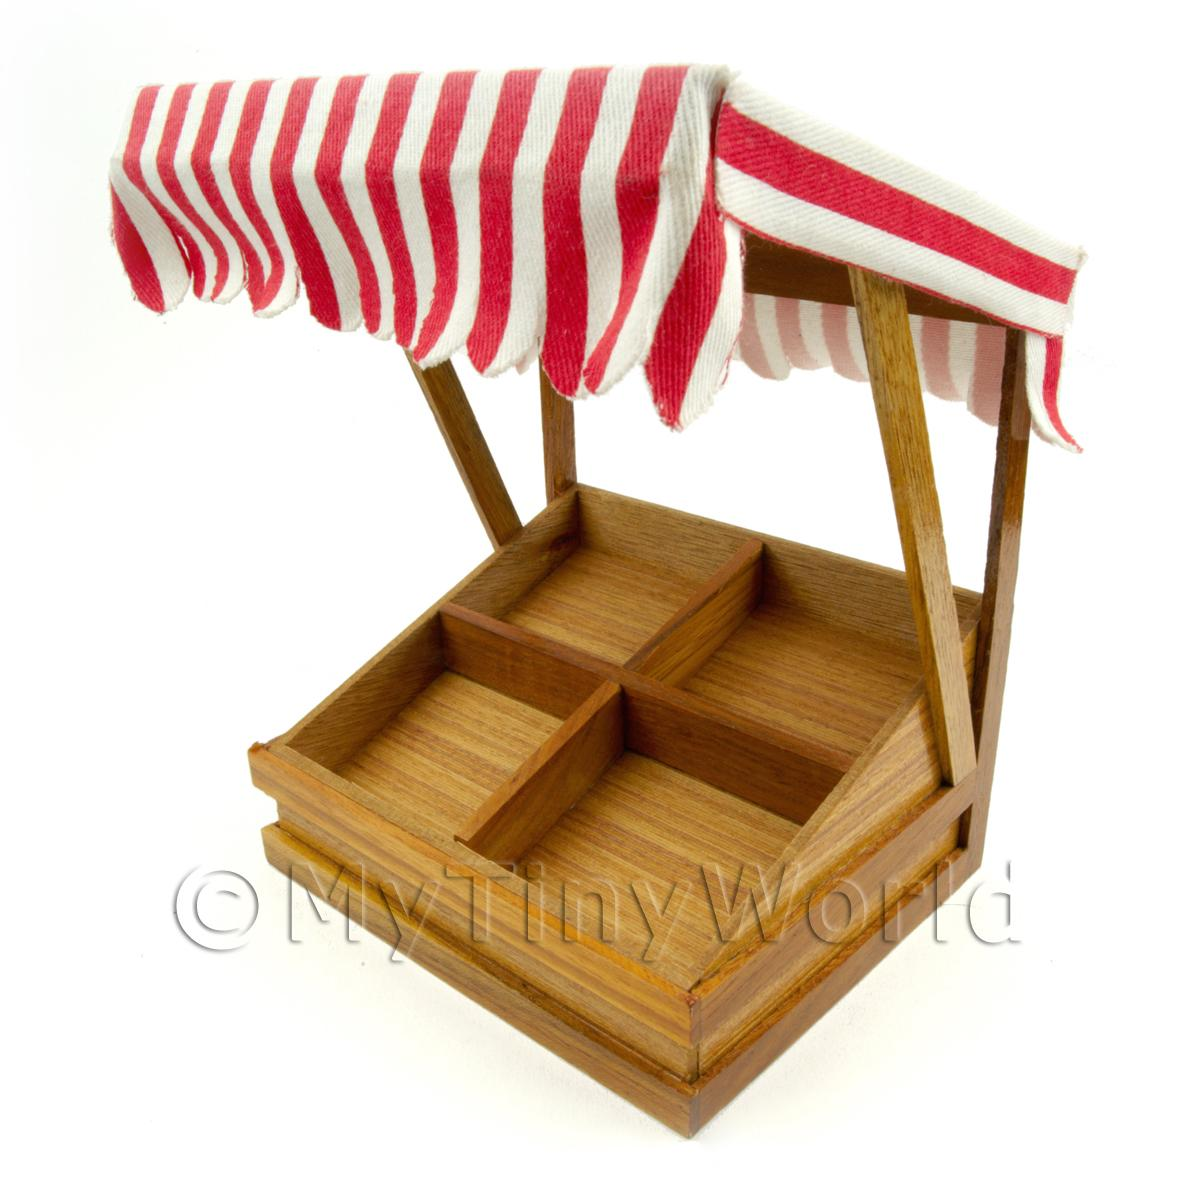 Miniature 4 Section Tilted Shop Display With Red Striped Canopy